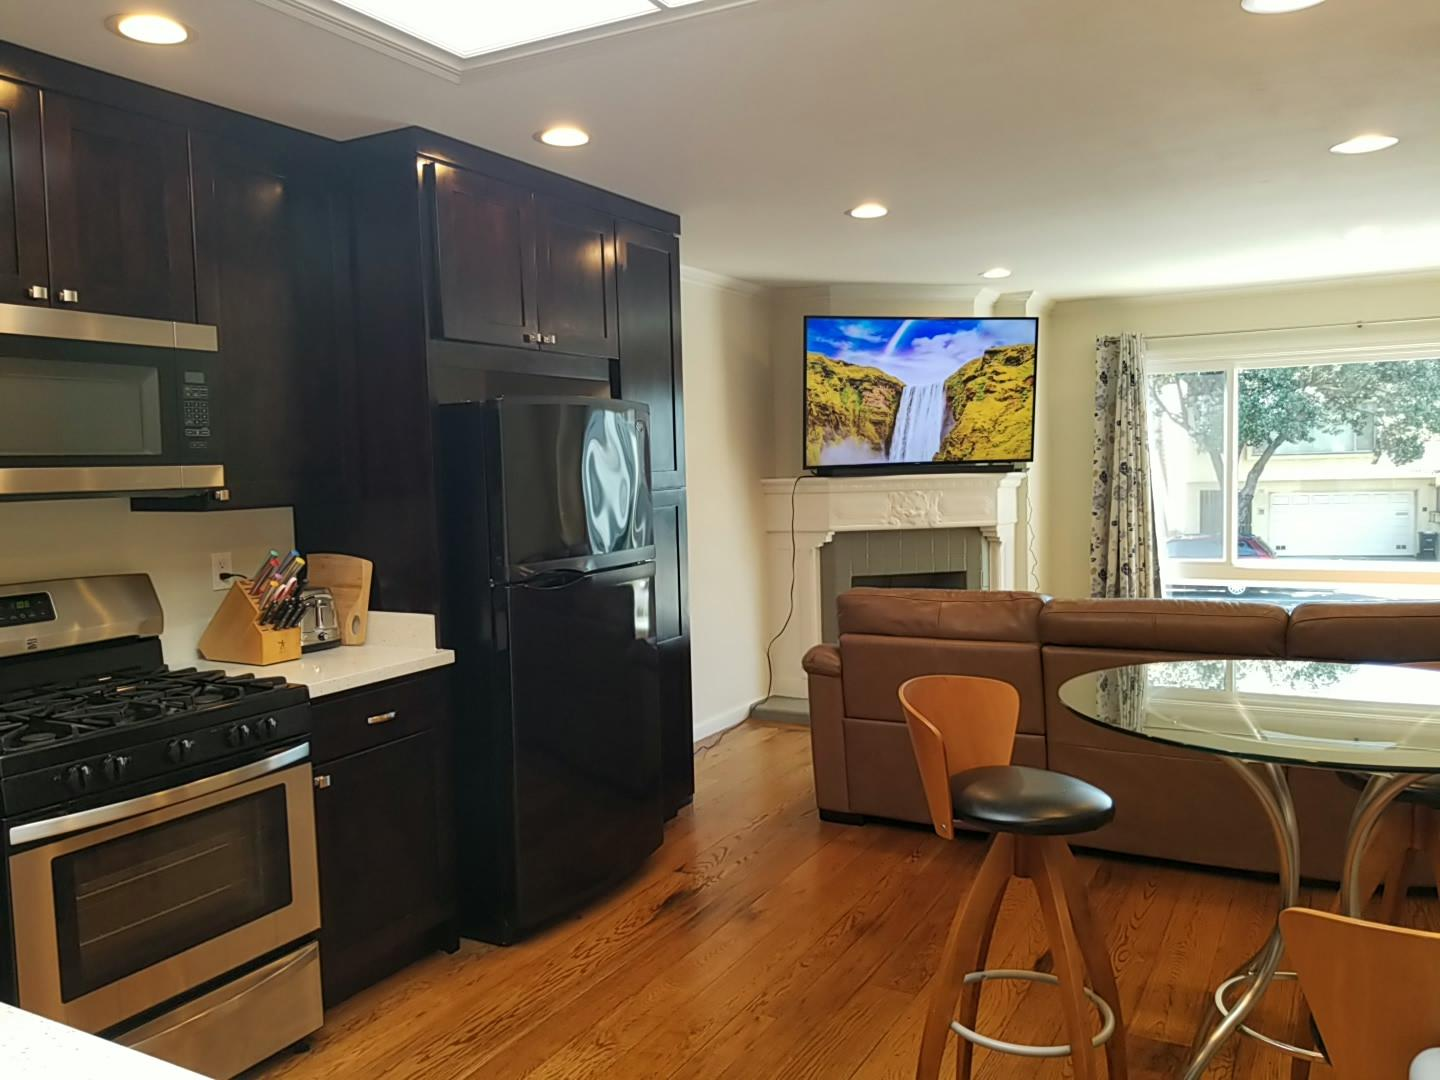 Upscale Sober Living Home with Many Amenities